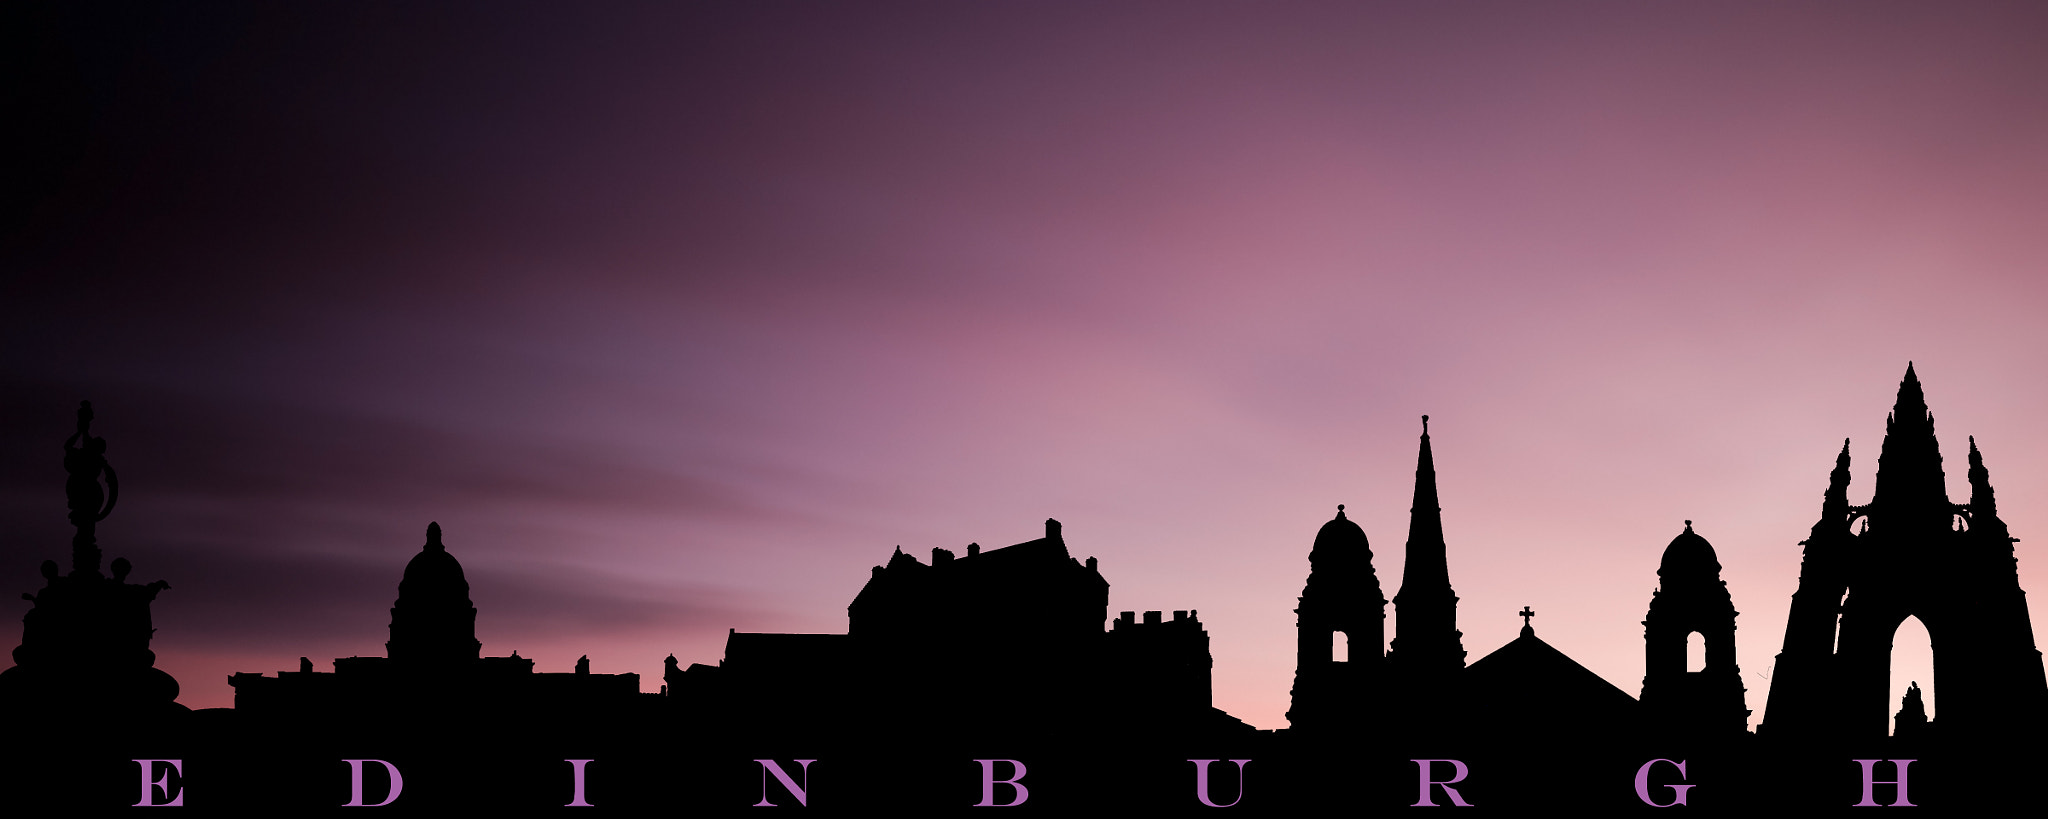 Photograph Edinburgh Panorama Montage by Zain Kapasi on 500px